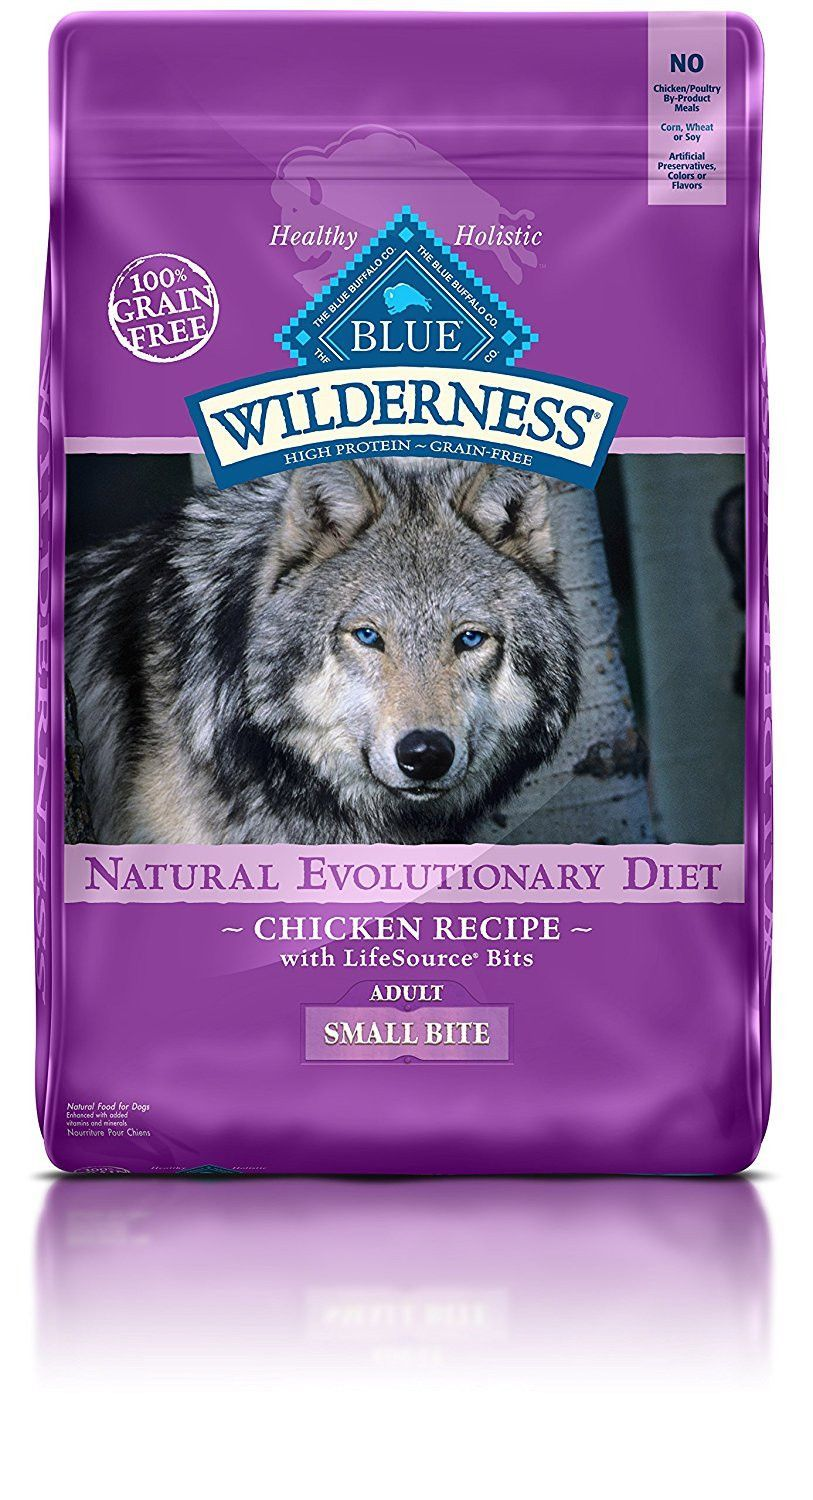 Blue Wilderness Adult Small Bite Grain Free Chicken Dry Dog Food